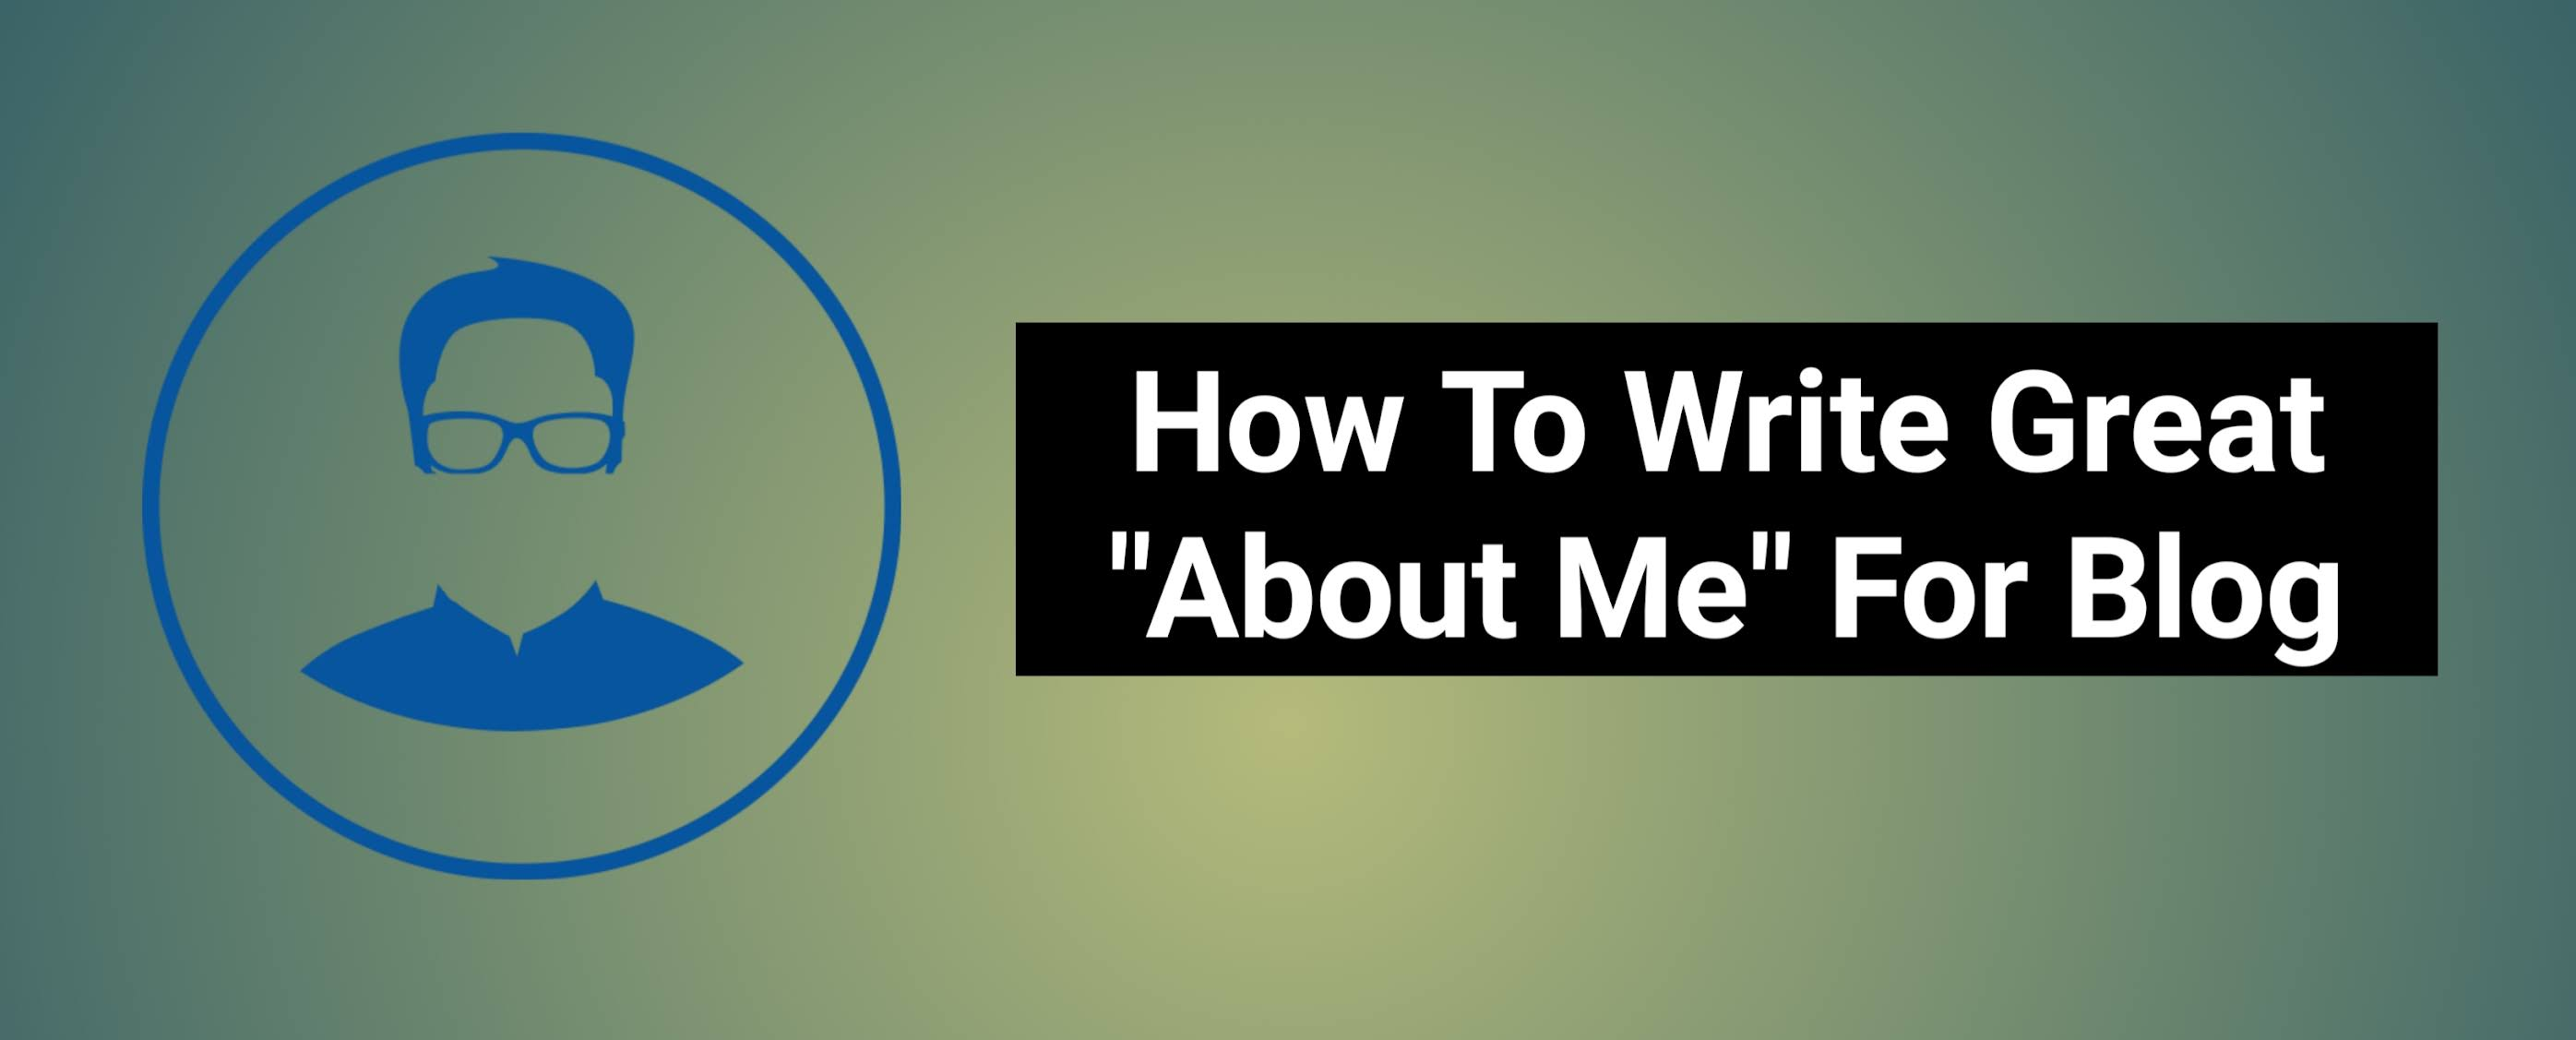 How To Write Great About Me For Blog